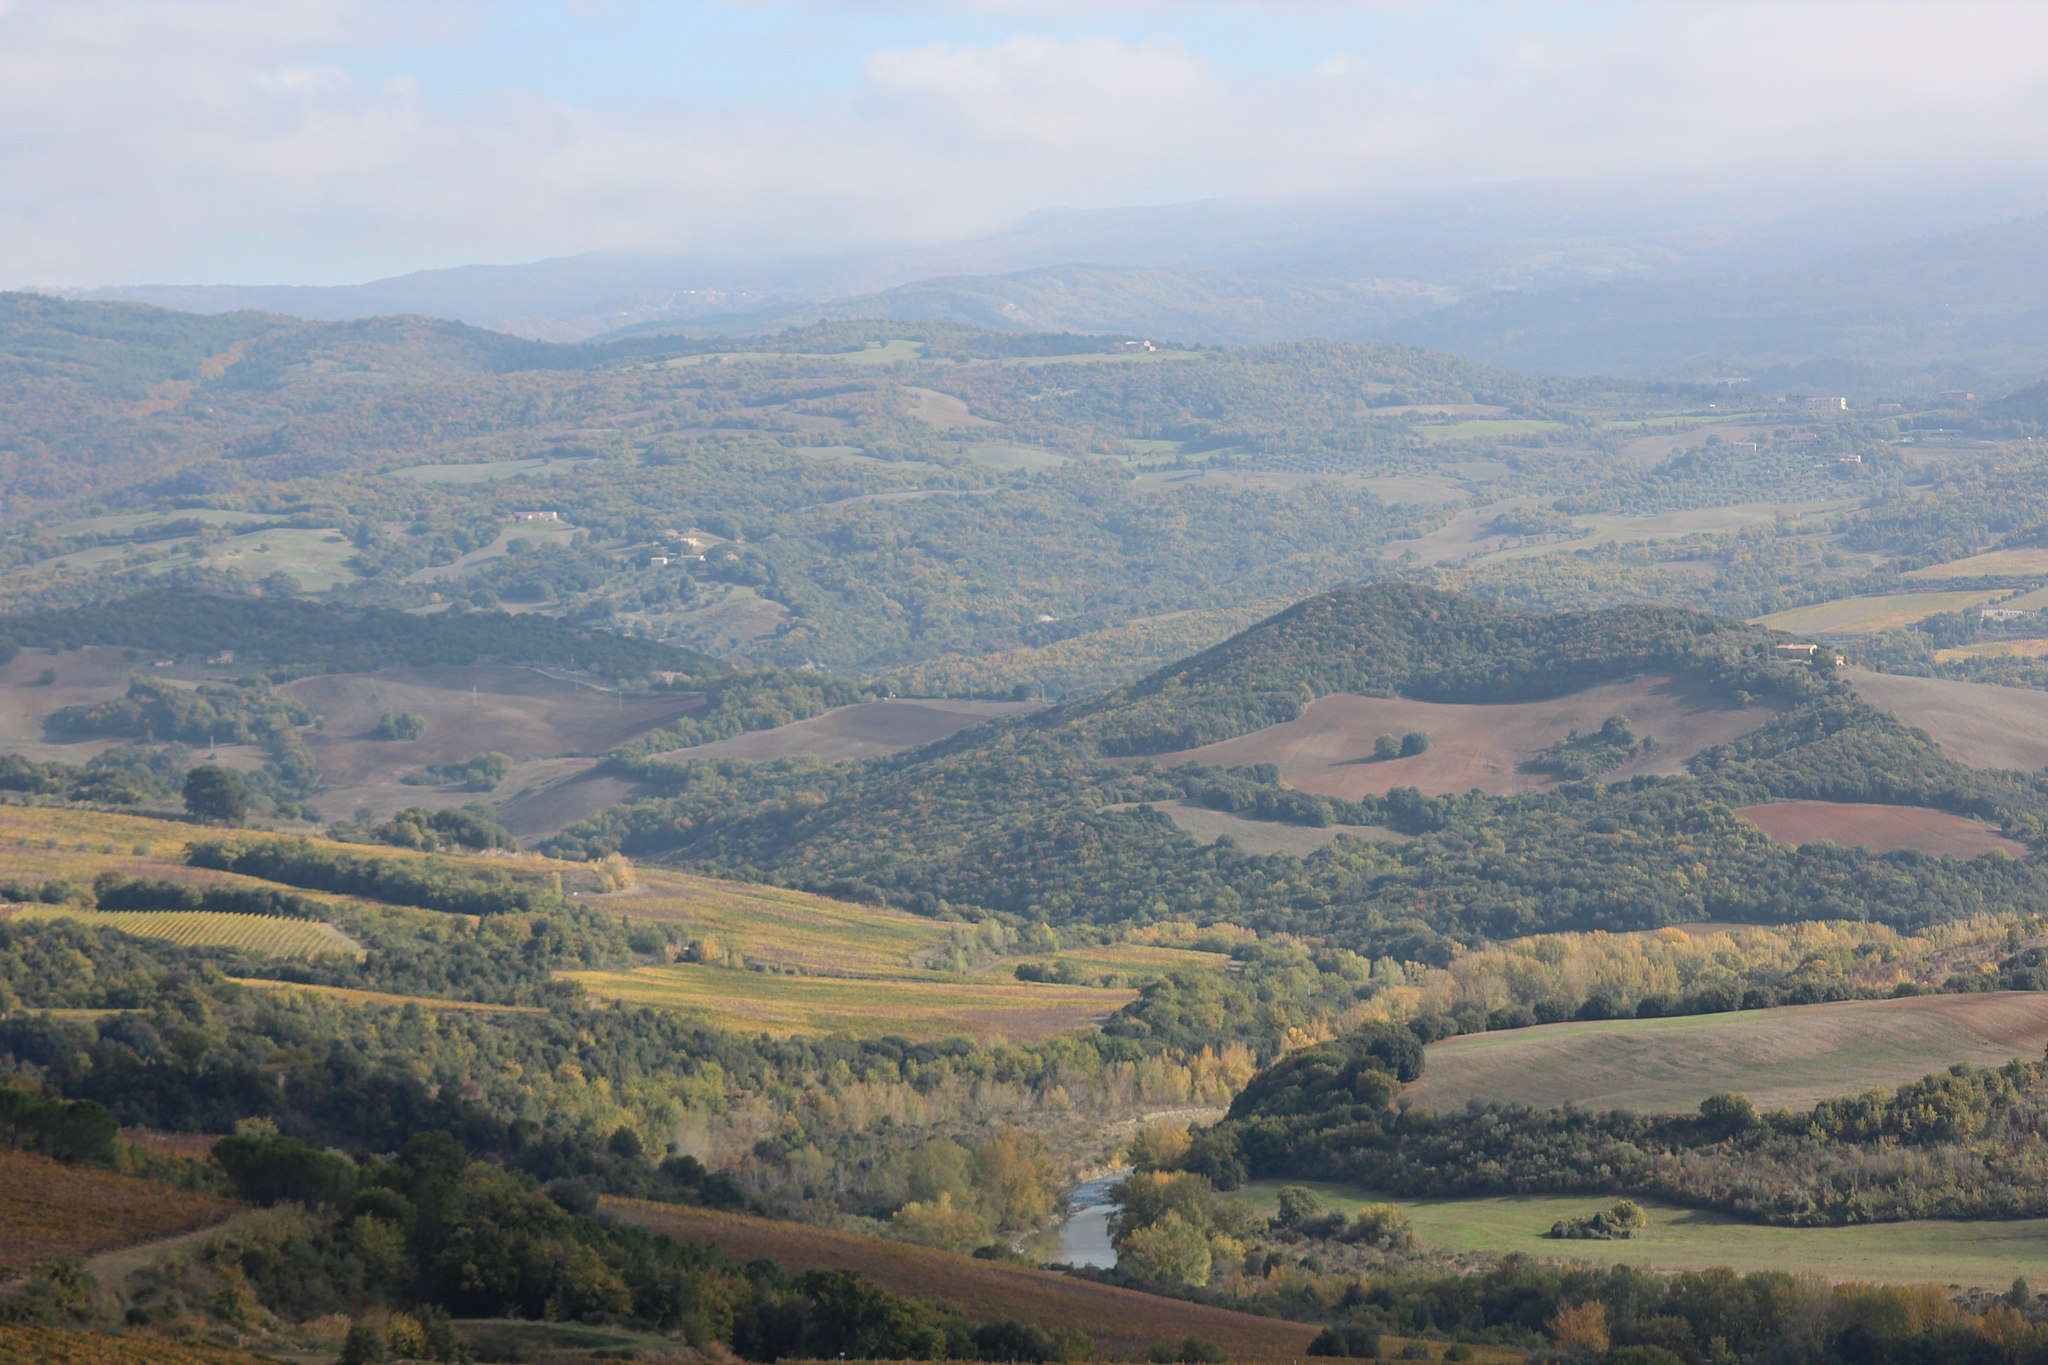 Val d'Orcia, Tuscany on the border between the Province of Siena (left) and the Province of Grosseto (right)